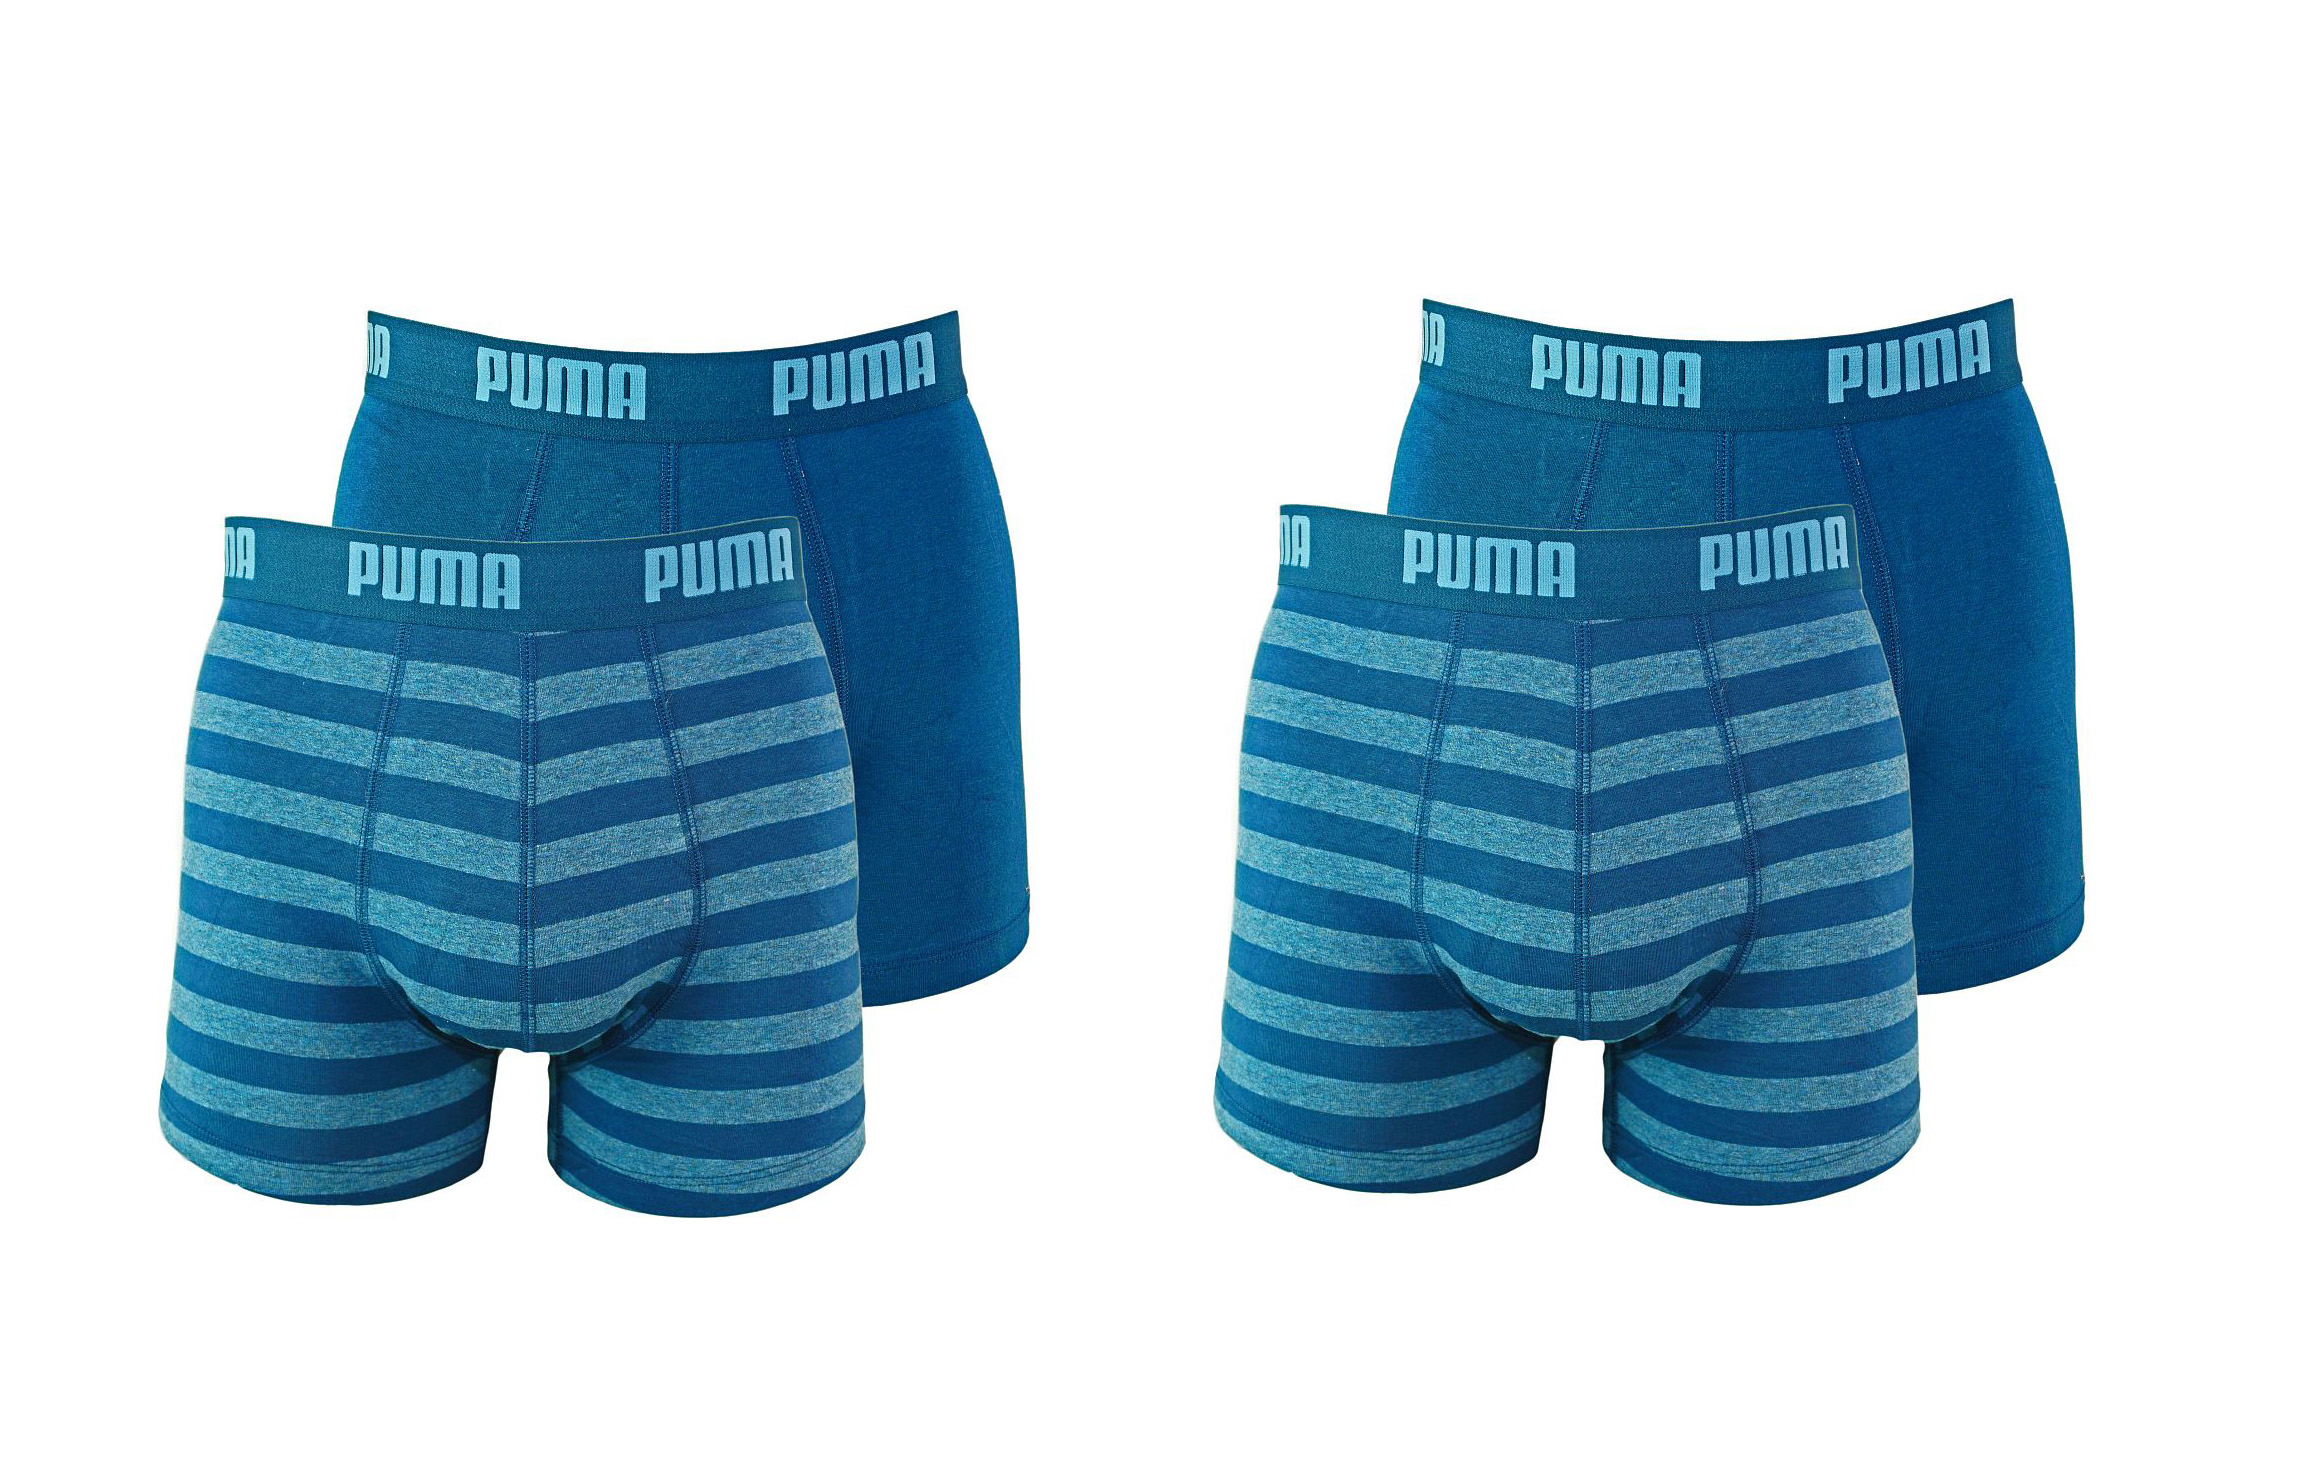 PUMA Shorts Unterhosen 2 x 2er Pack Boxer 651001001 162 020 denim SF17-PMS2